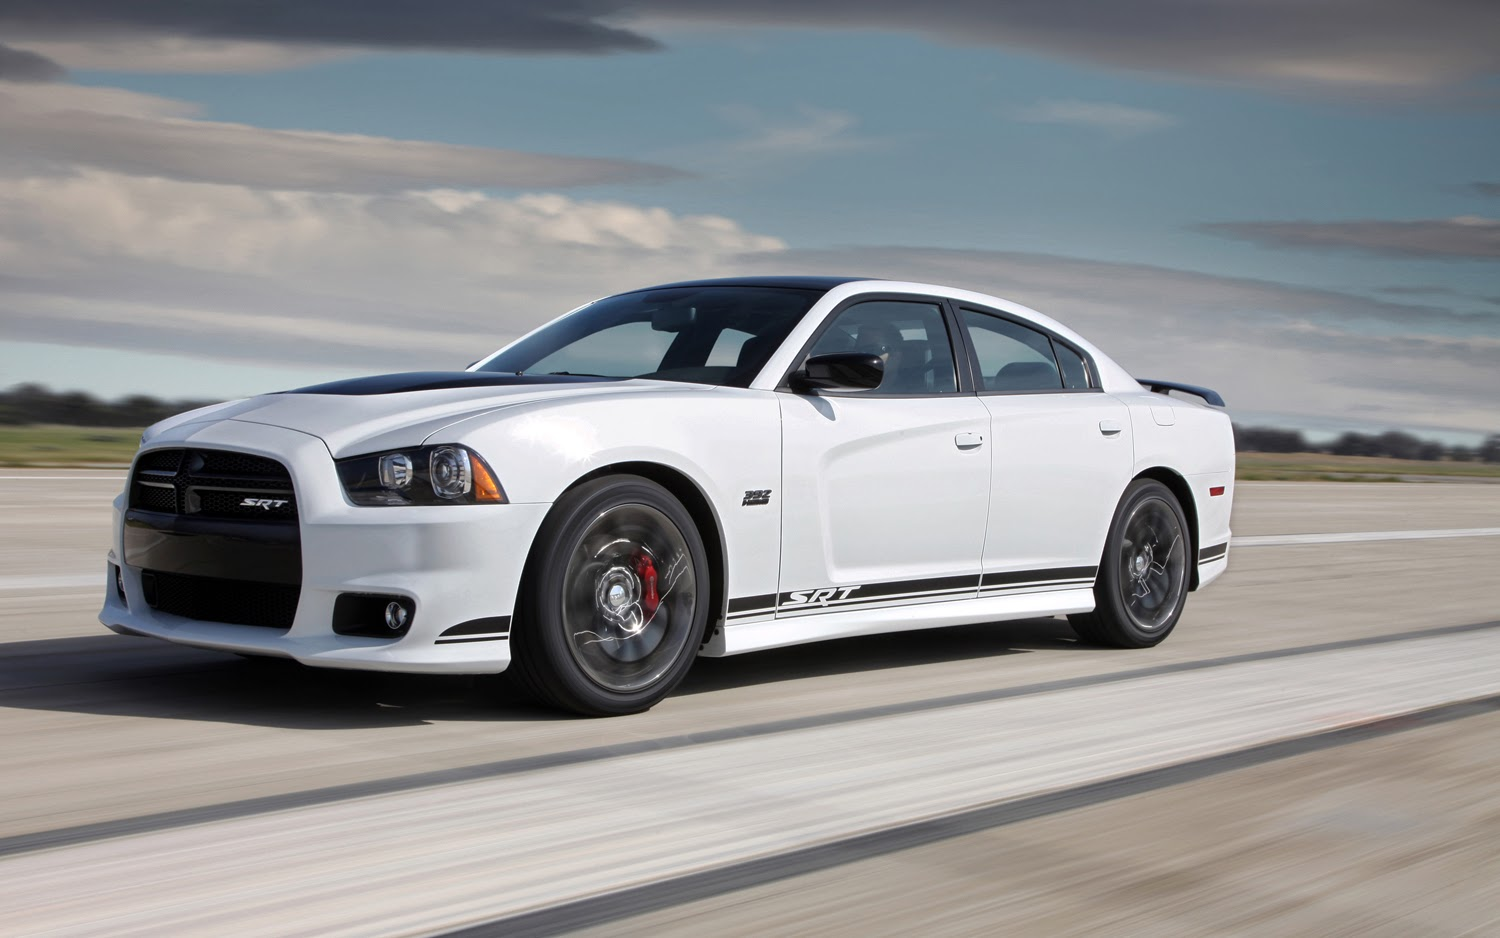 Foto Mobil Dodge Charger SRT 2014 | HD Wallpaper